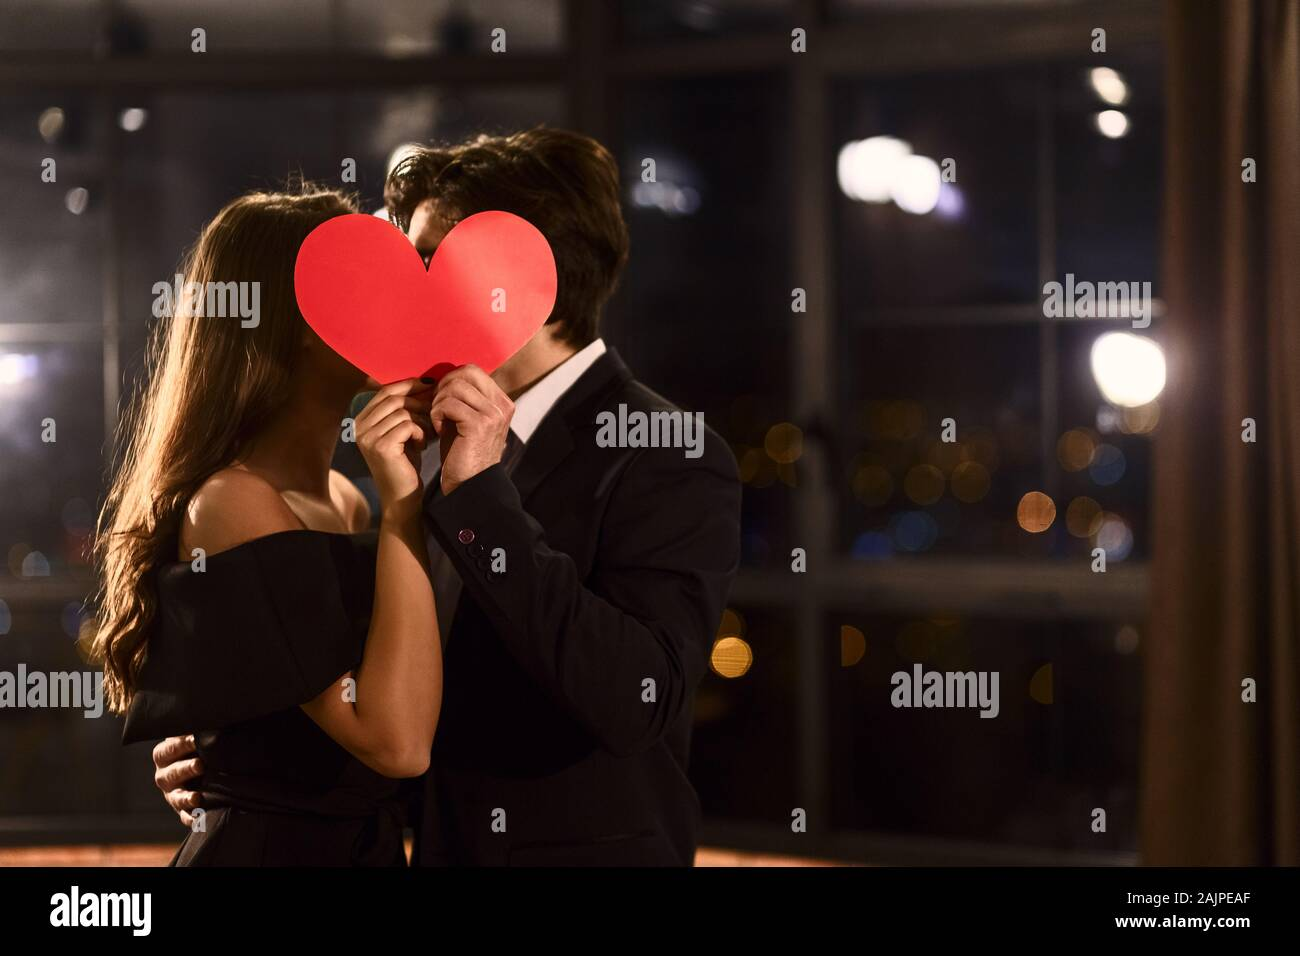 Download Cute Couple In Love Kissing Behind A Paper Heart Celebrating Saint Valentine S Day Concept Copy Space Stock Photo Alamy